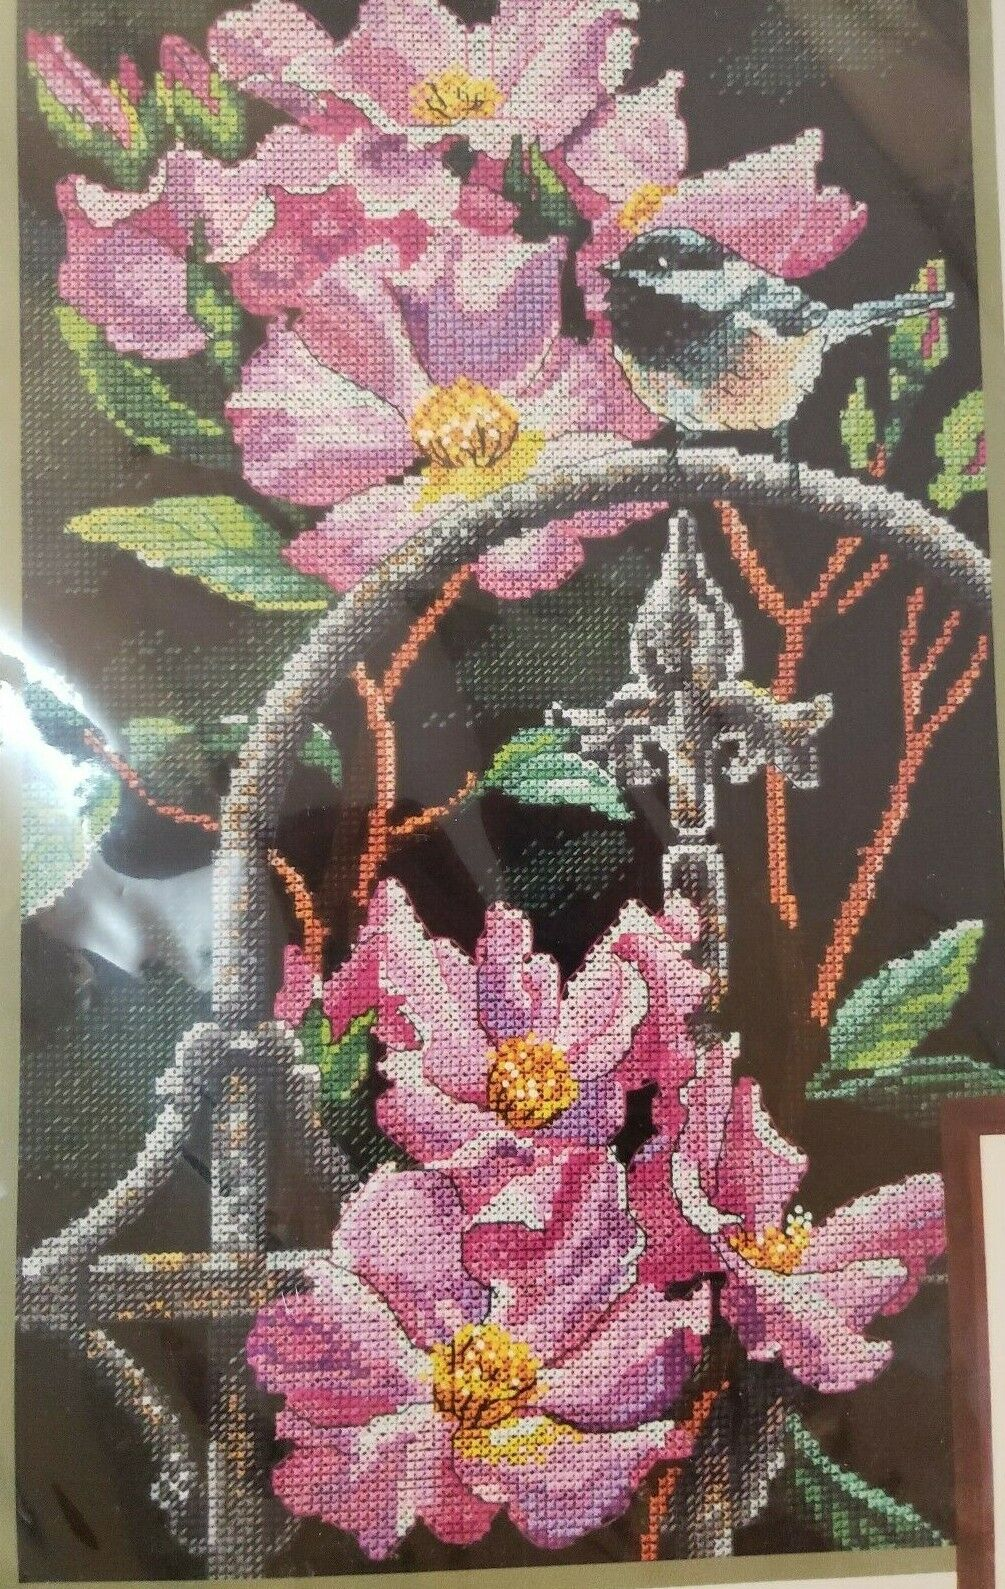 MXJSUA DIY 5D Diamond Painting by Number Kits Full Drill Rhinestone Embroidery Cross Stitch Pictures Arts Craft for Home Wall Decor,Blooming Epiphyllum-12x12In